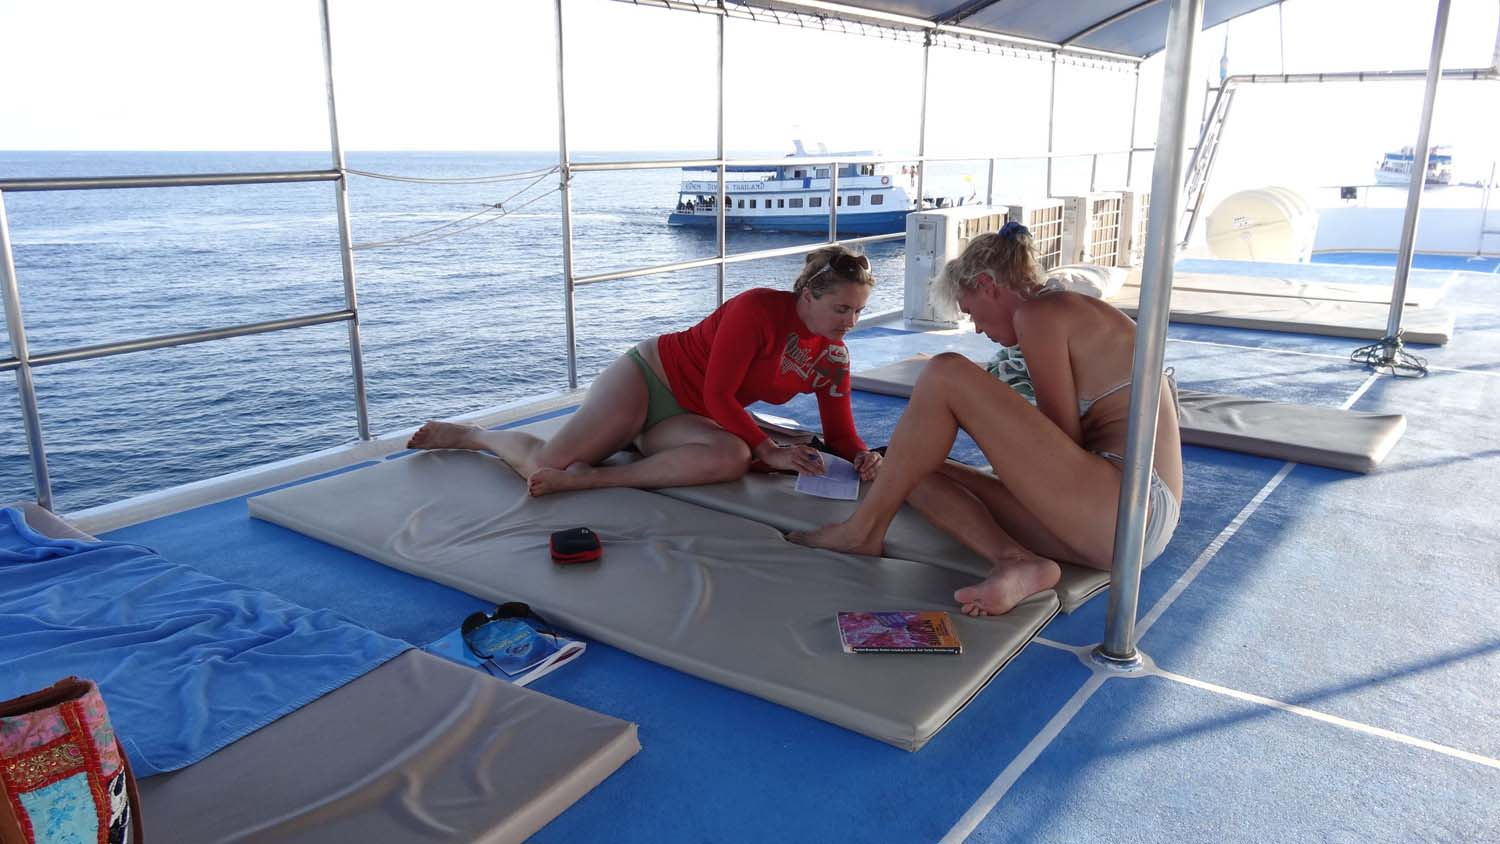 studying hard for our advanced diving certificate on the liveaboard